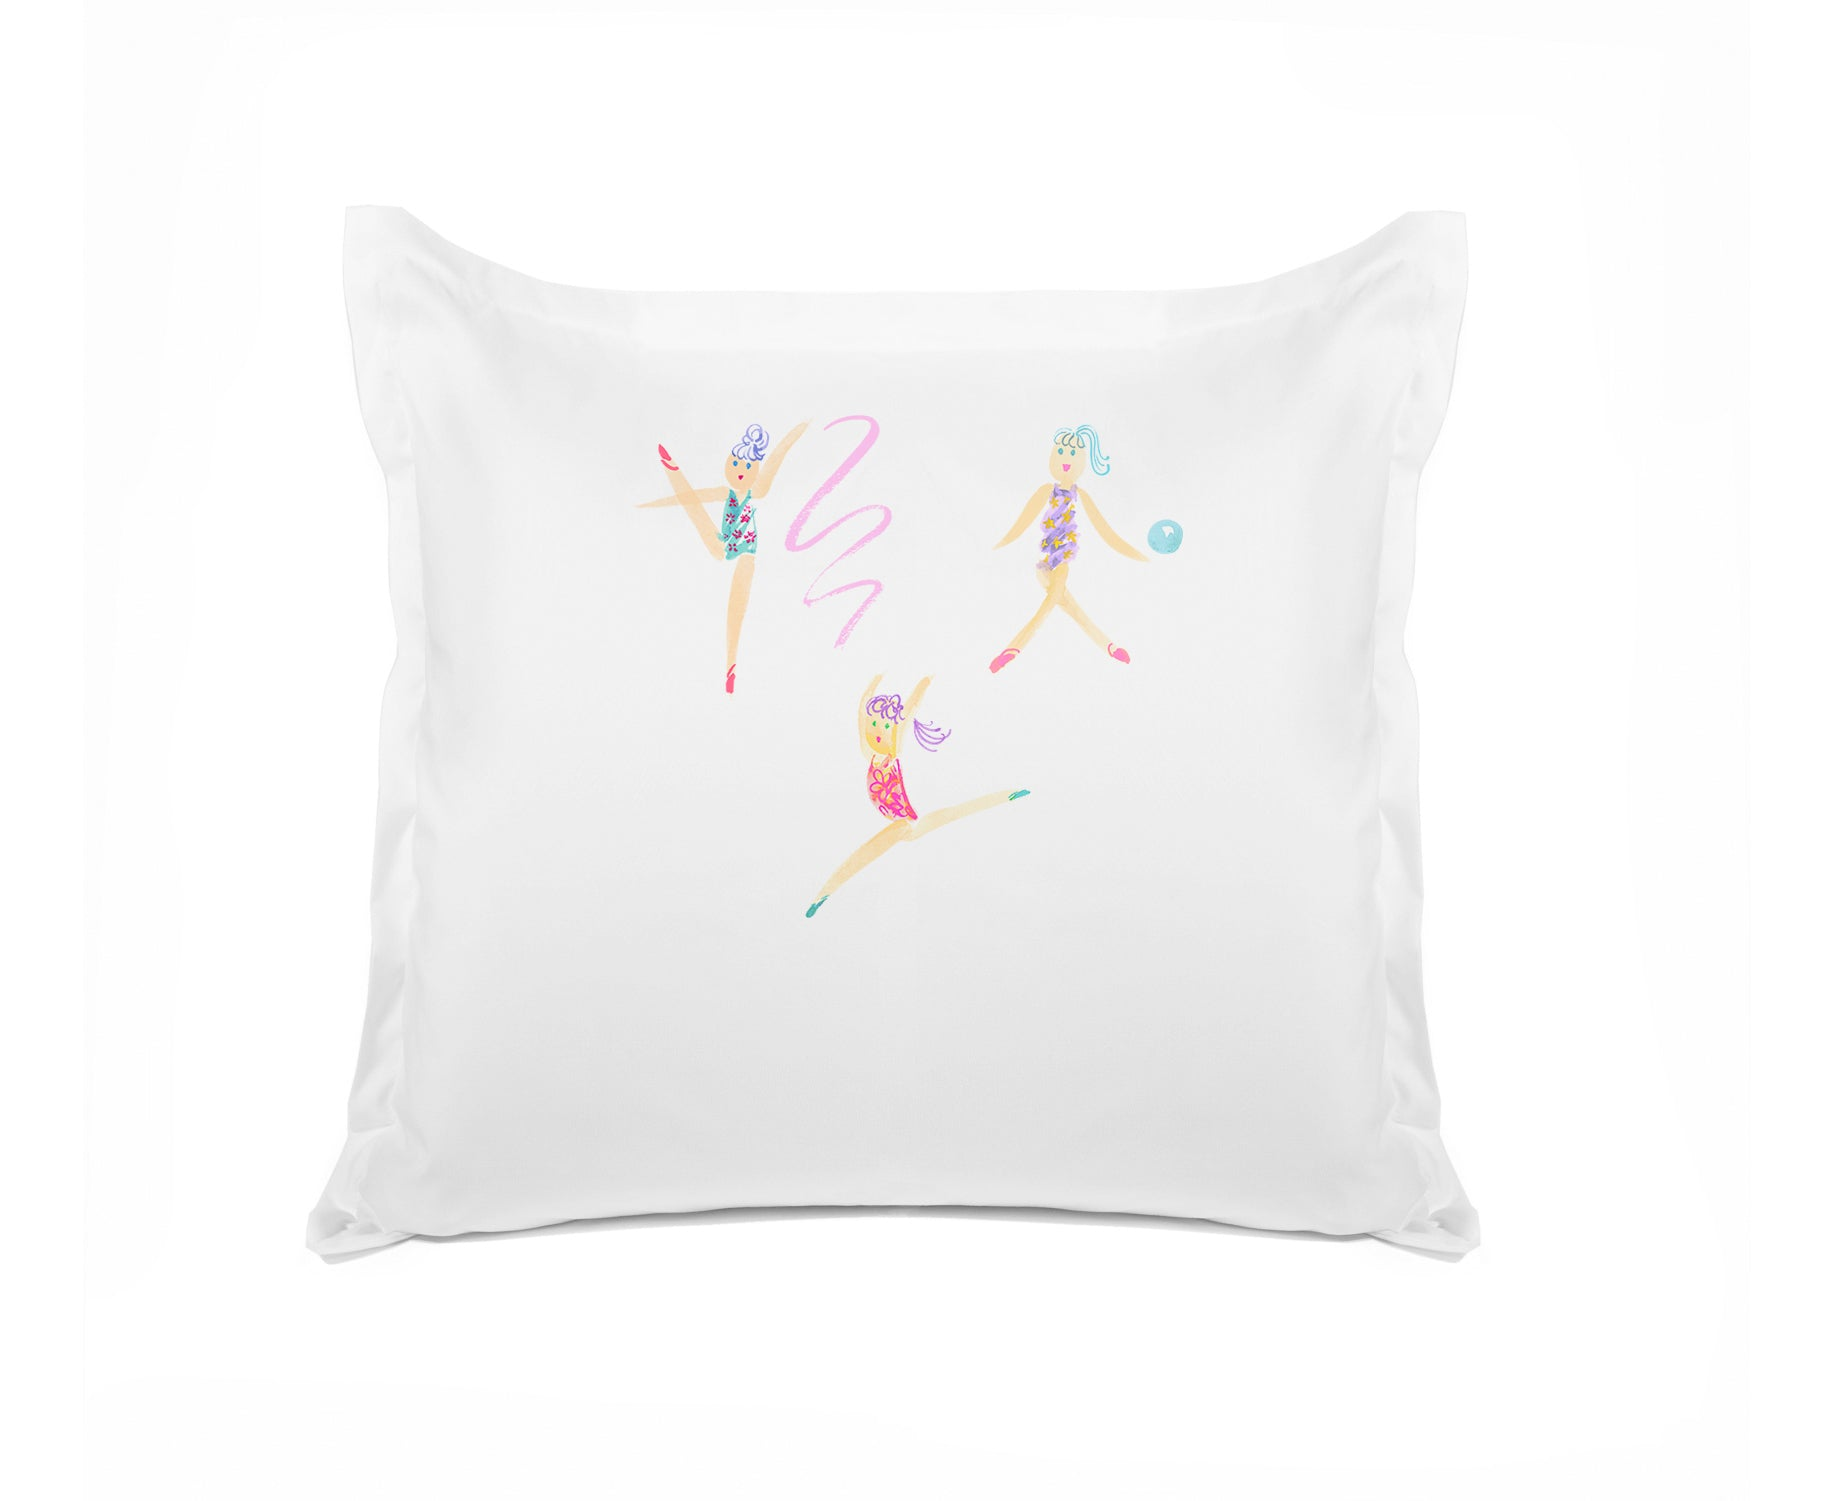 The Gymnasts - Personalized Kids Pillowcase Collection